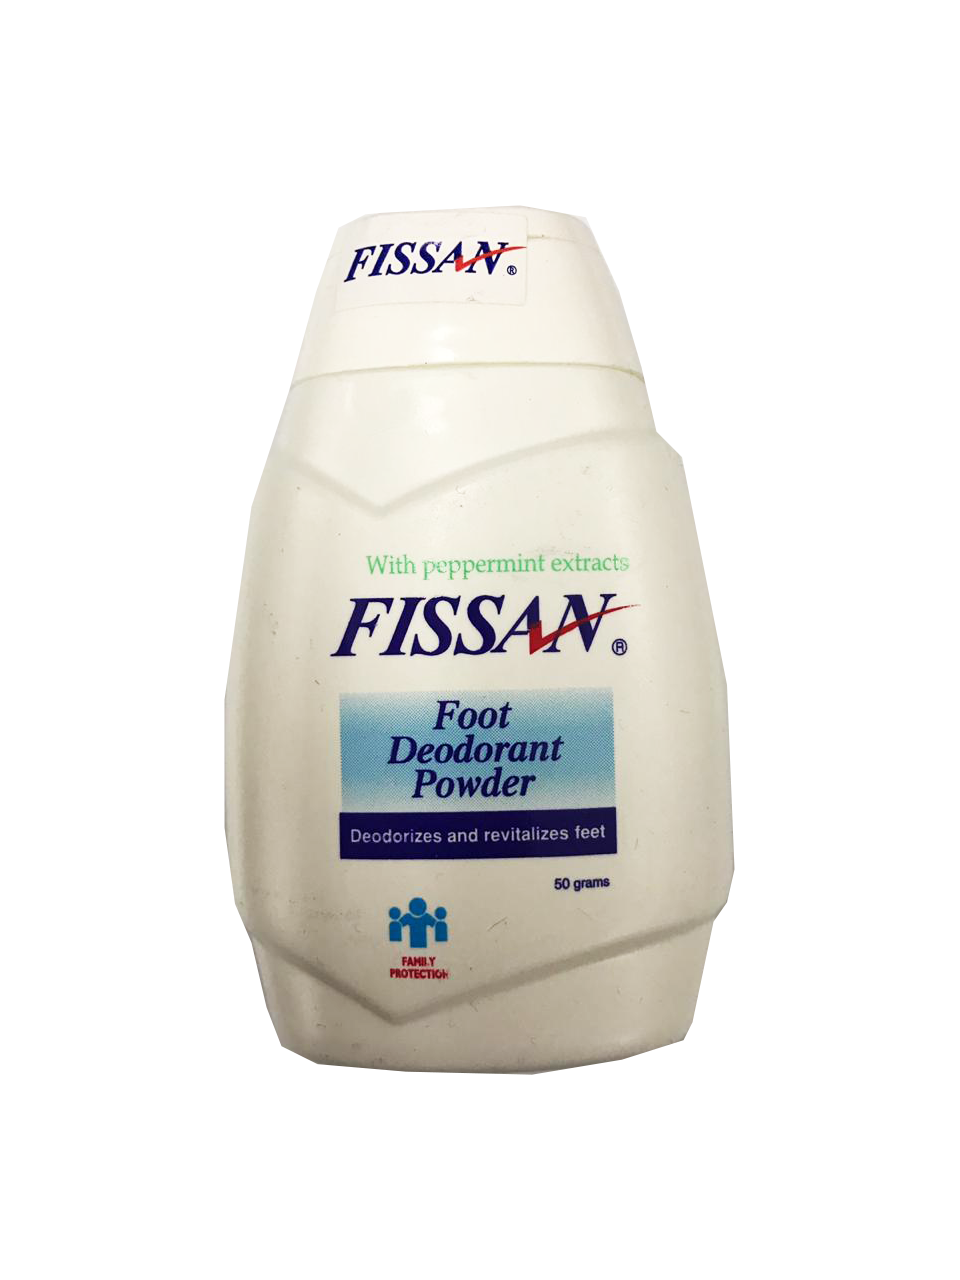 Fissan Foot Deodorant Powder 50g